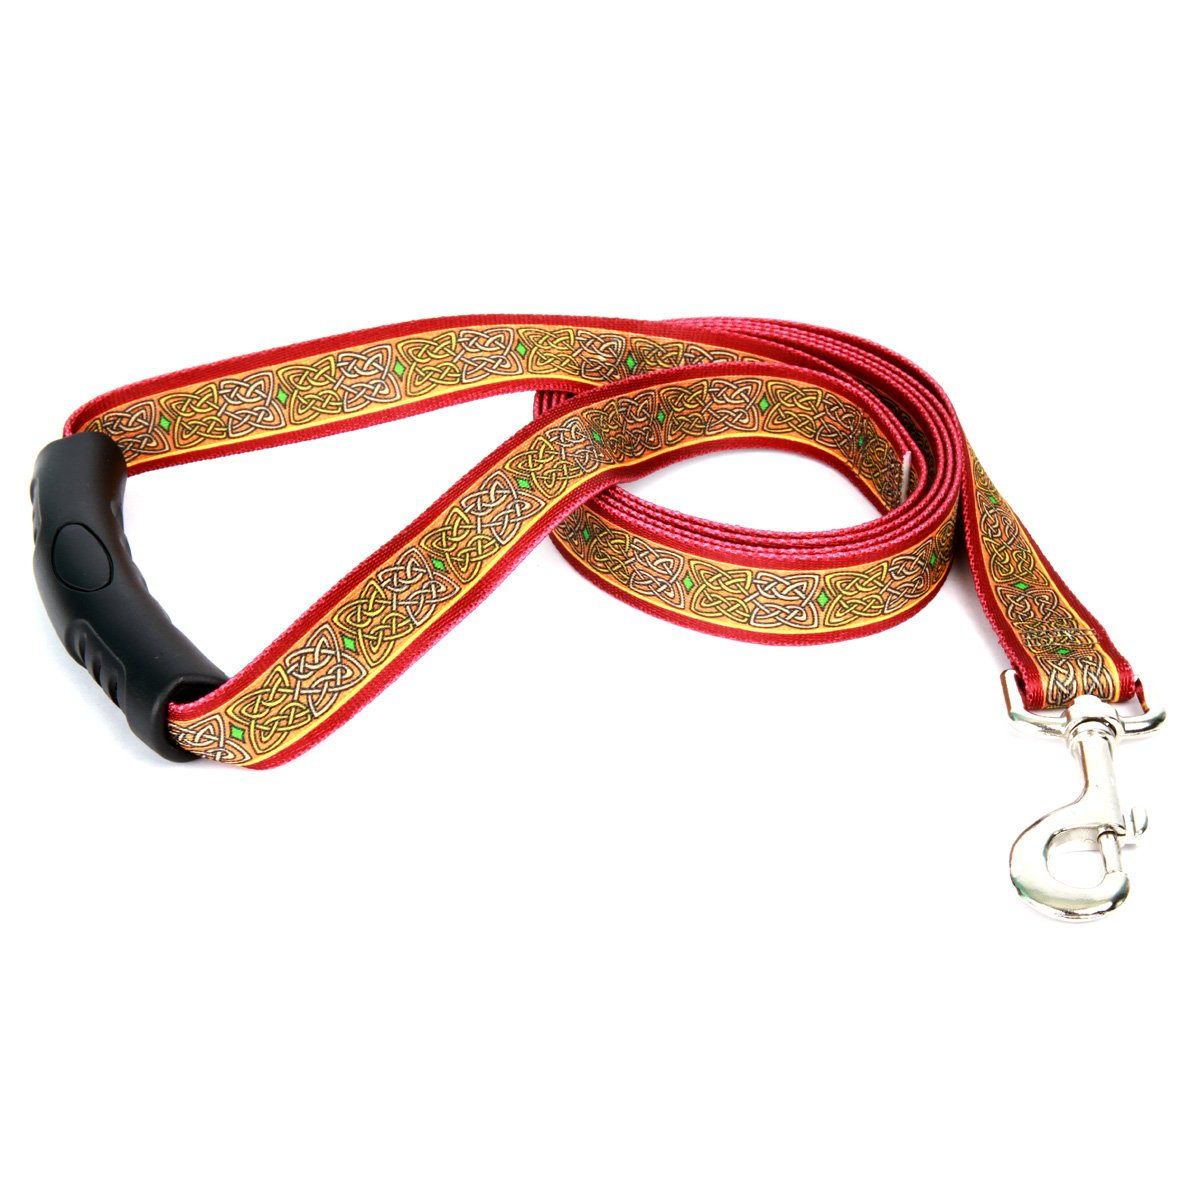 Yellow Dog Design Celtic Ez-Grip Dog Leash with Comfort Handle 3/4'' Wide and 5' (60'') Long, Small/Medium